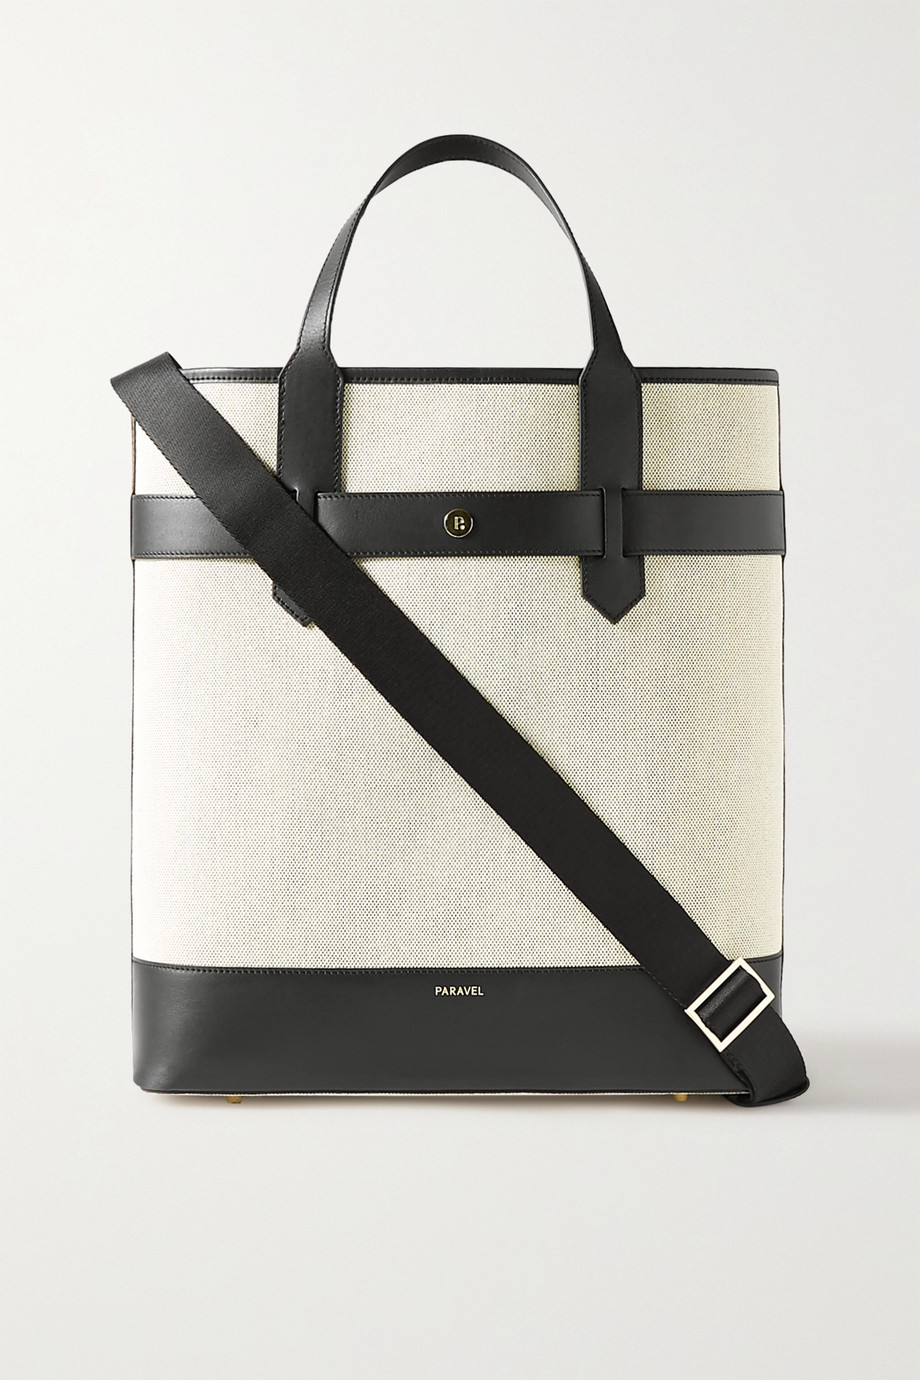 Paravel Pacific leather-trimmed canvas tote